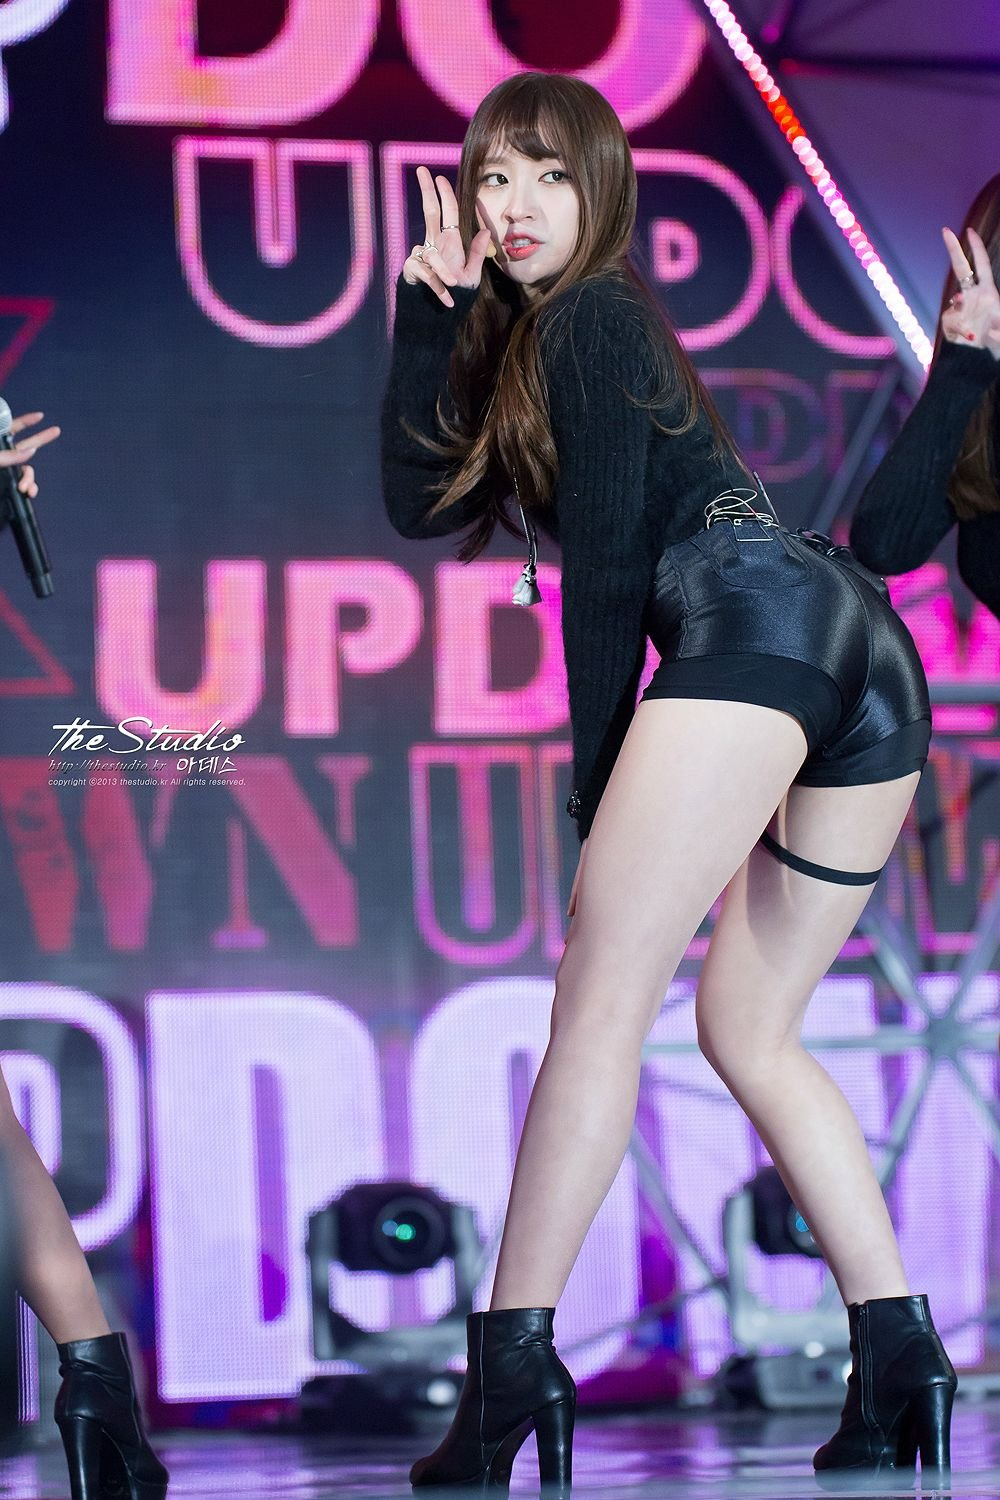 Ass Cute Pics 12 photos of exid hani's cute butt - quietly